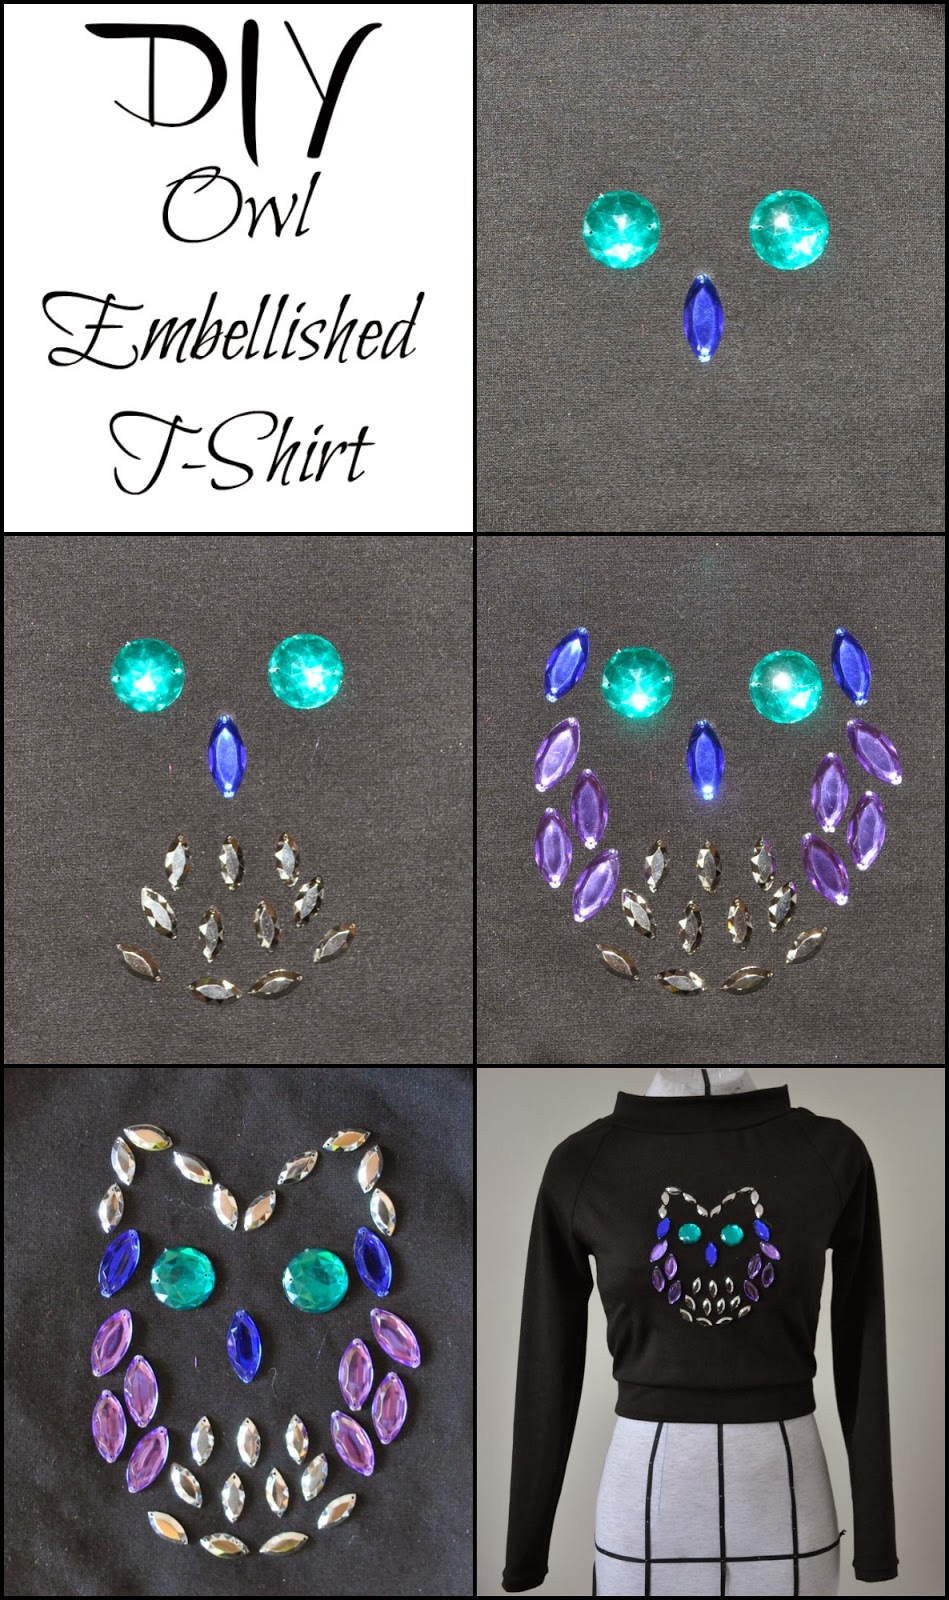 Jeweled Shirt, DIY, Embellished Shirt